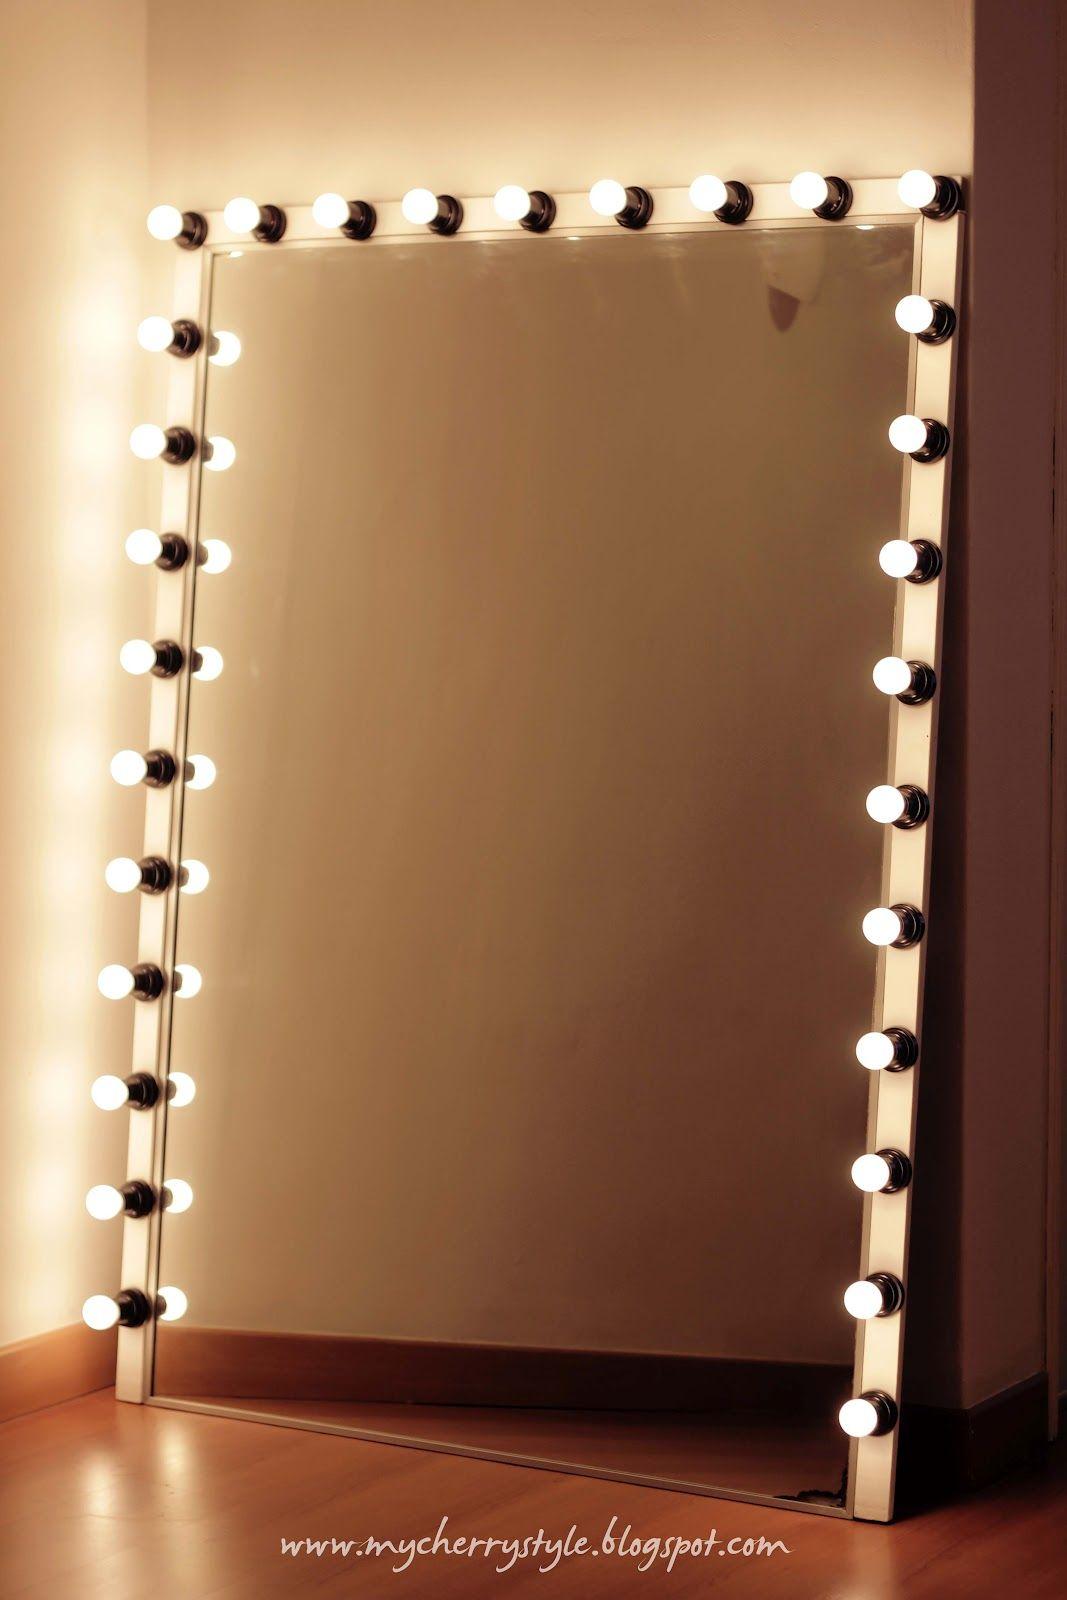 Big Vanity Mirror With Lights Magnificent Diy Hollywoodstyle Mirror With Lights Tutorial From Scratchfor Decorating Design